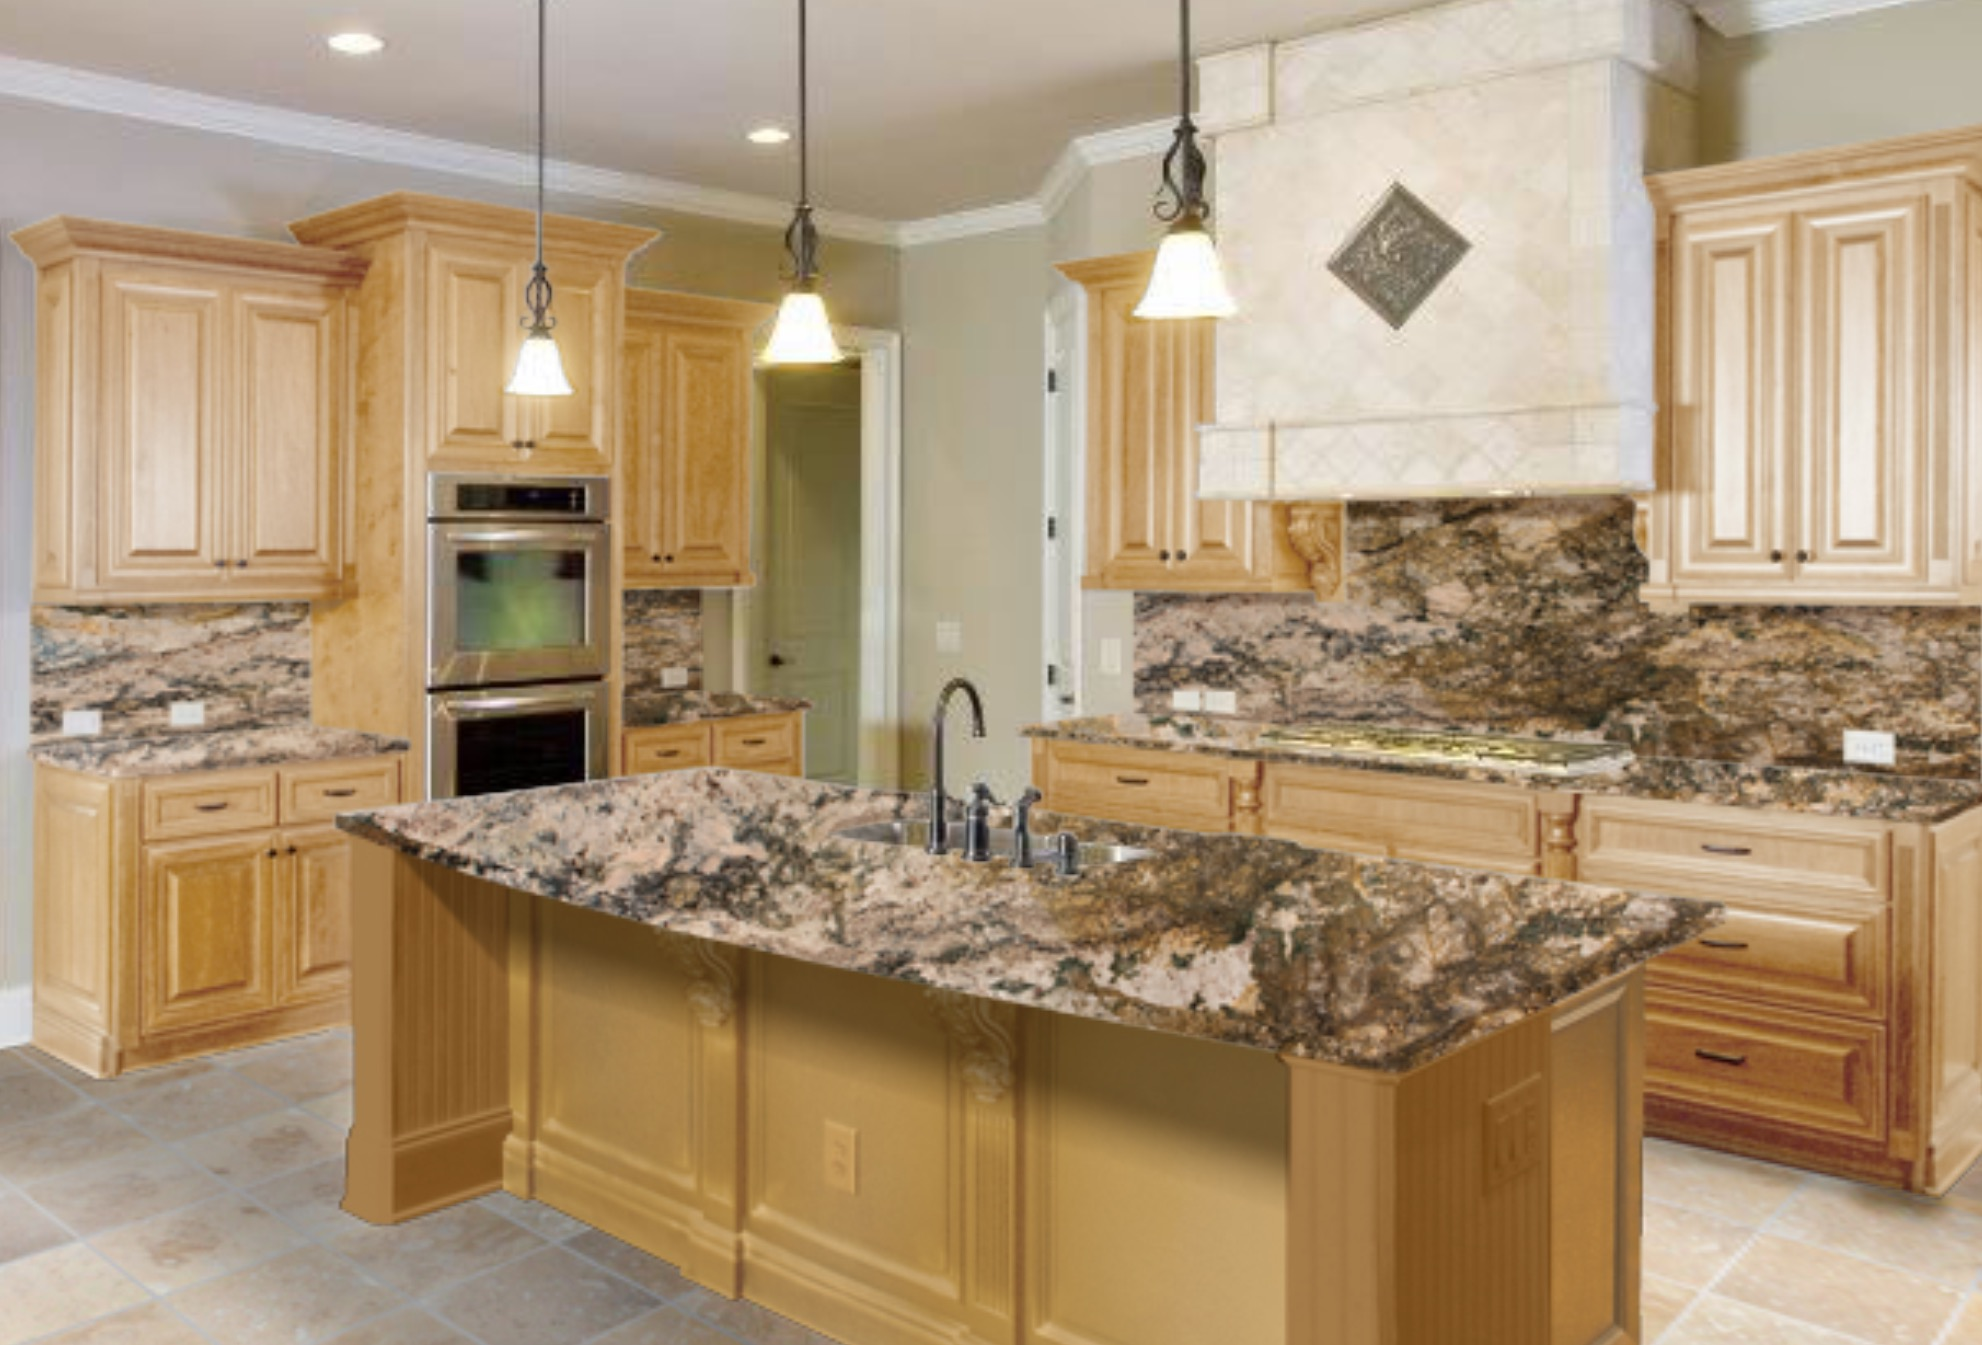 Best Kitchen Gallery: The Right Granite Countertops For Your Maple Cabi of Maple Kitchen Cabinets With Granite Countertops on cal-ite.com